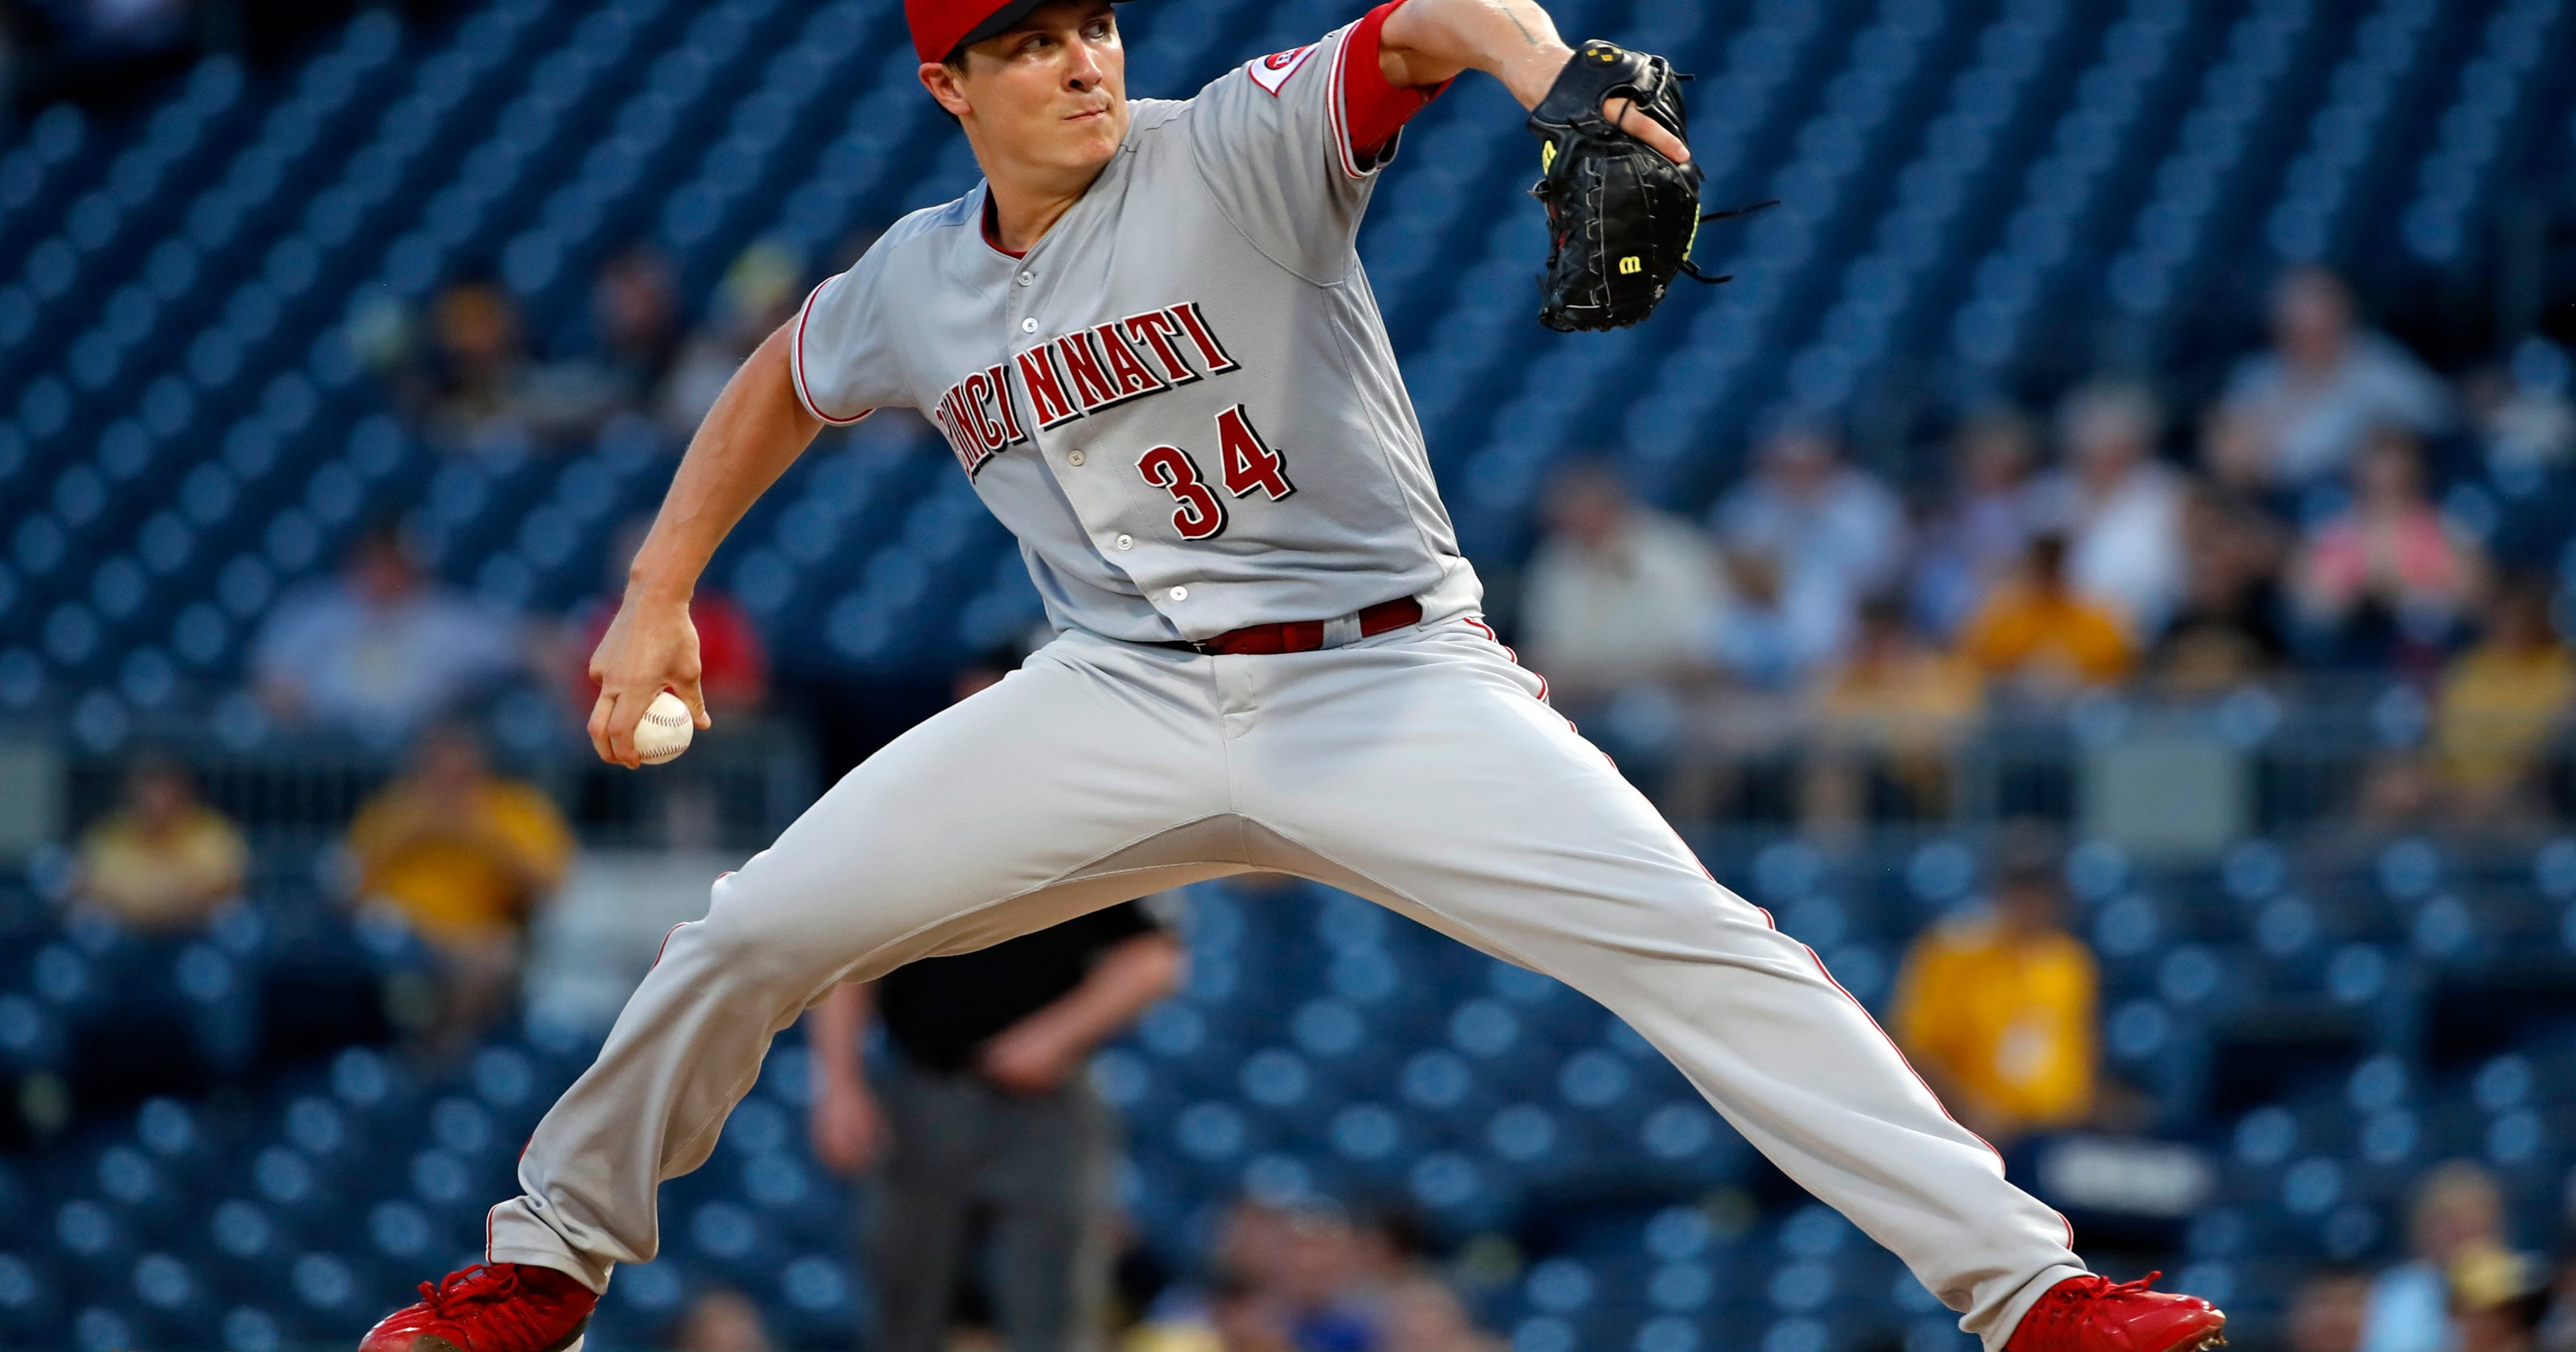 a64ab8f4b464 Reds drop Homer Bailey from rotation